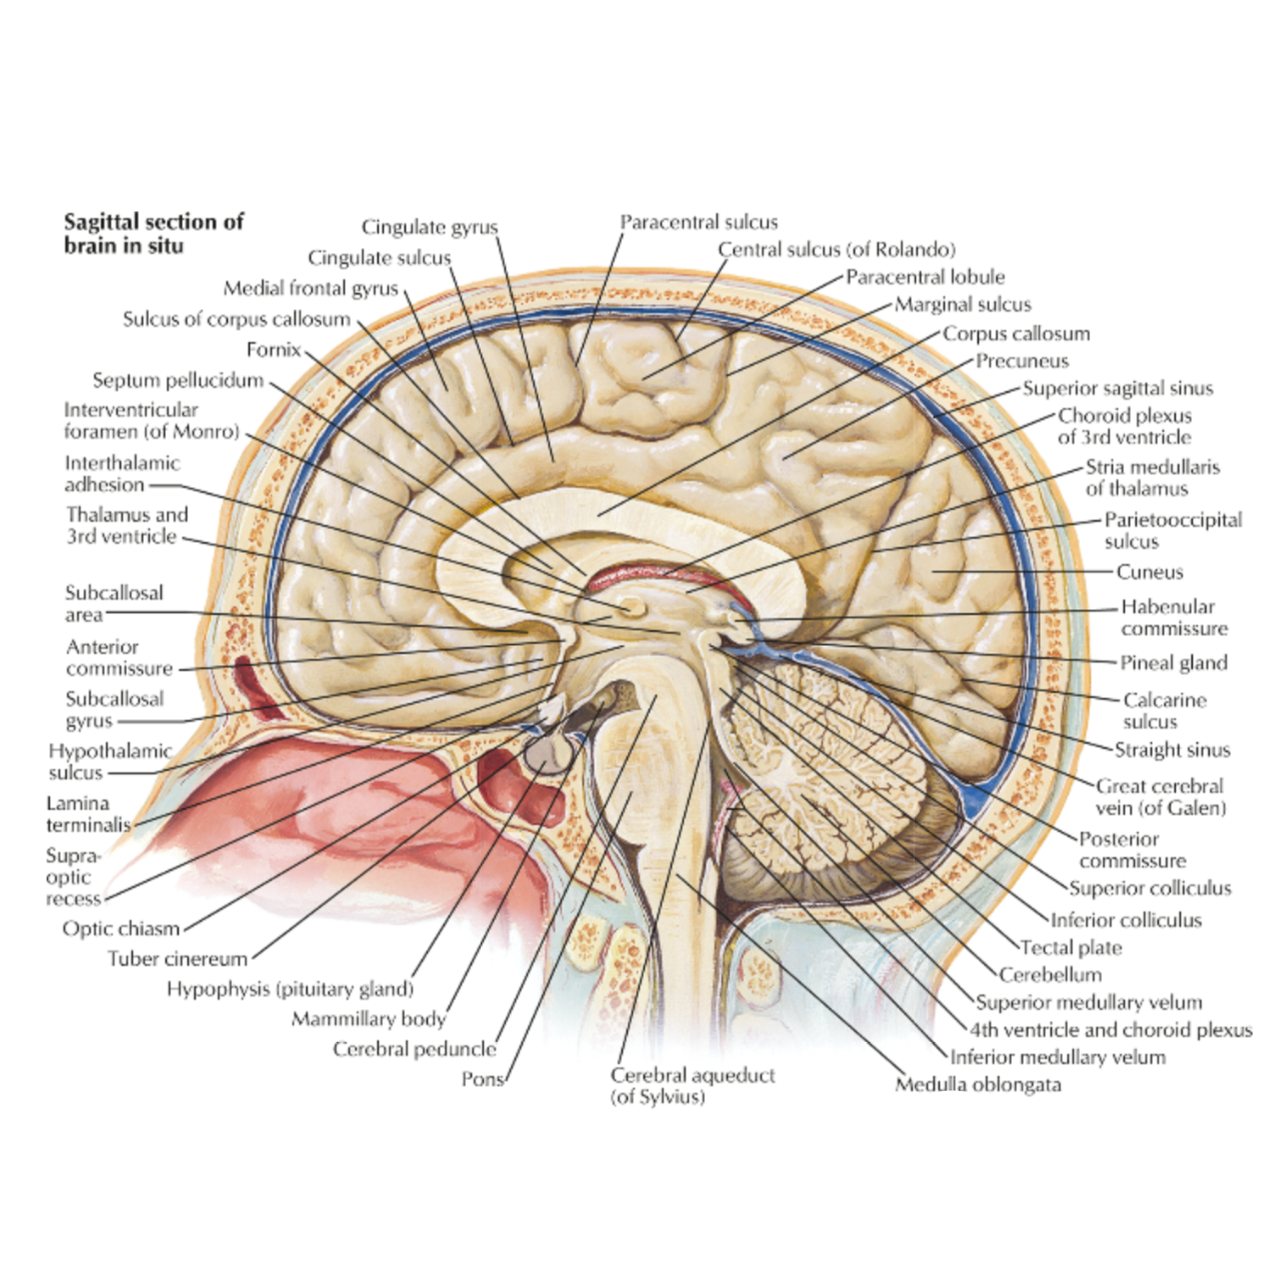 Spinal cord's position coming from the occipital bone